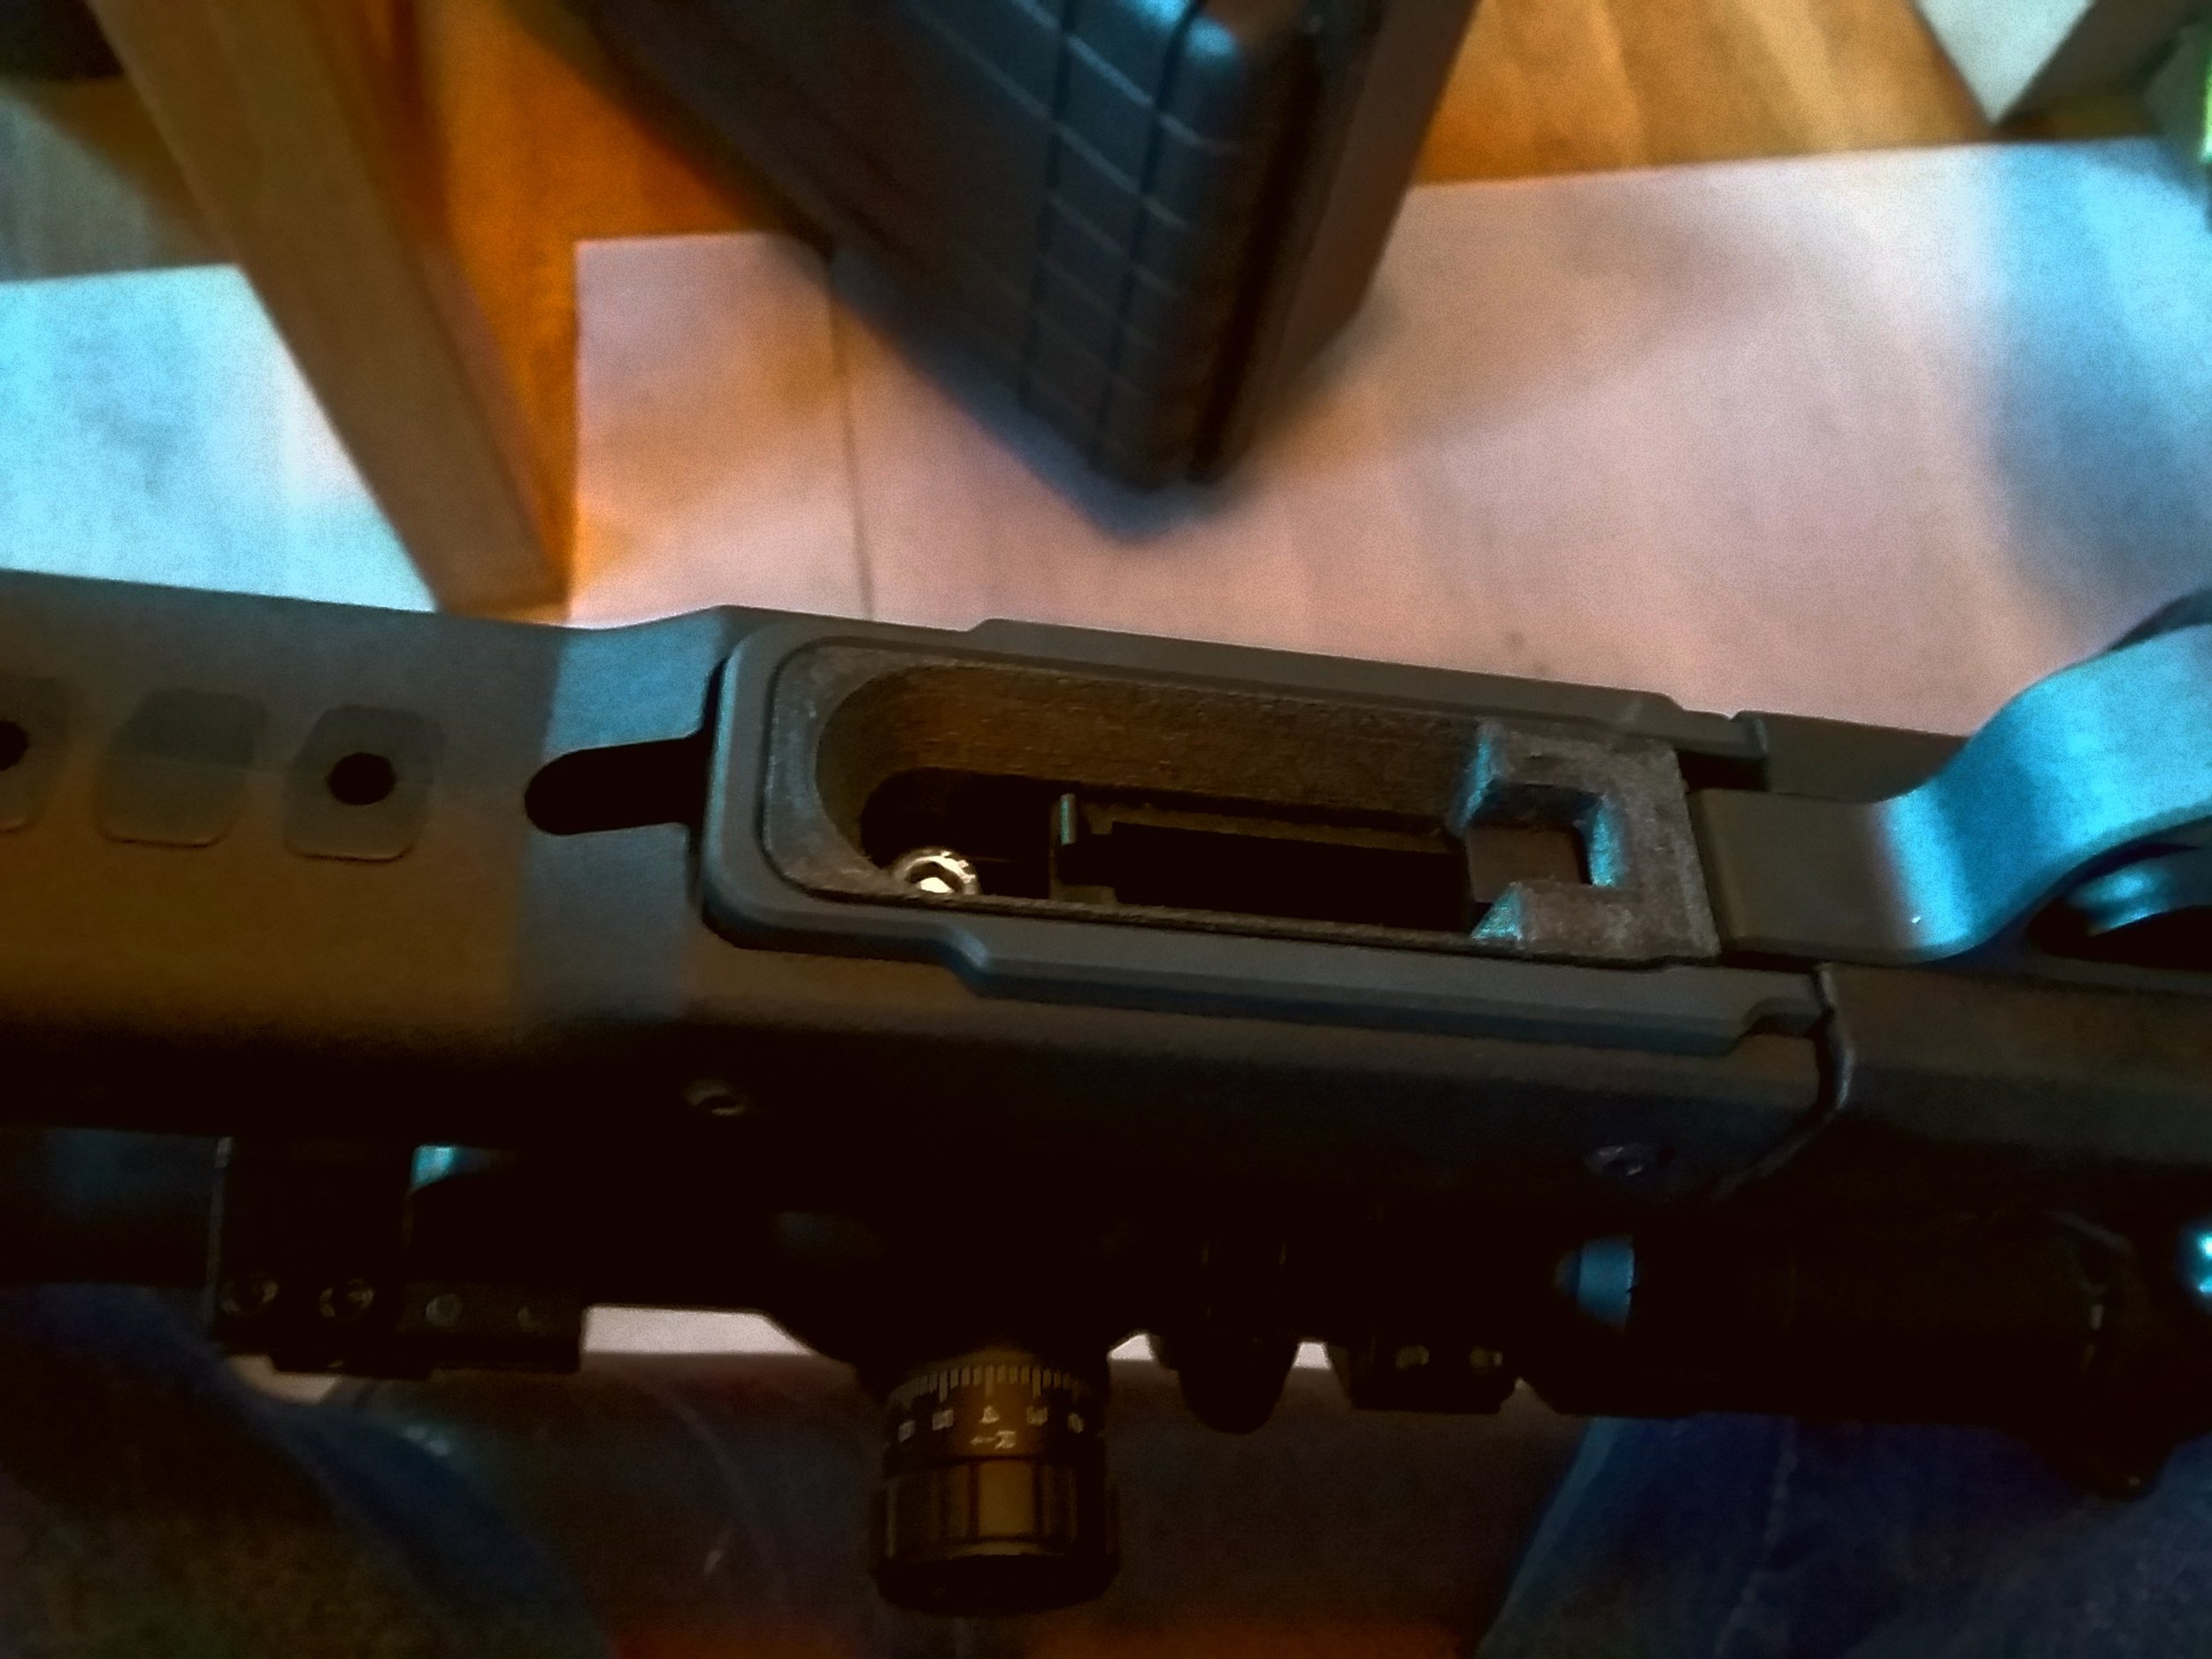 Magazine well installed. Much much better. Note the front action screw is still accessible, a deliberate design choice.